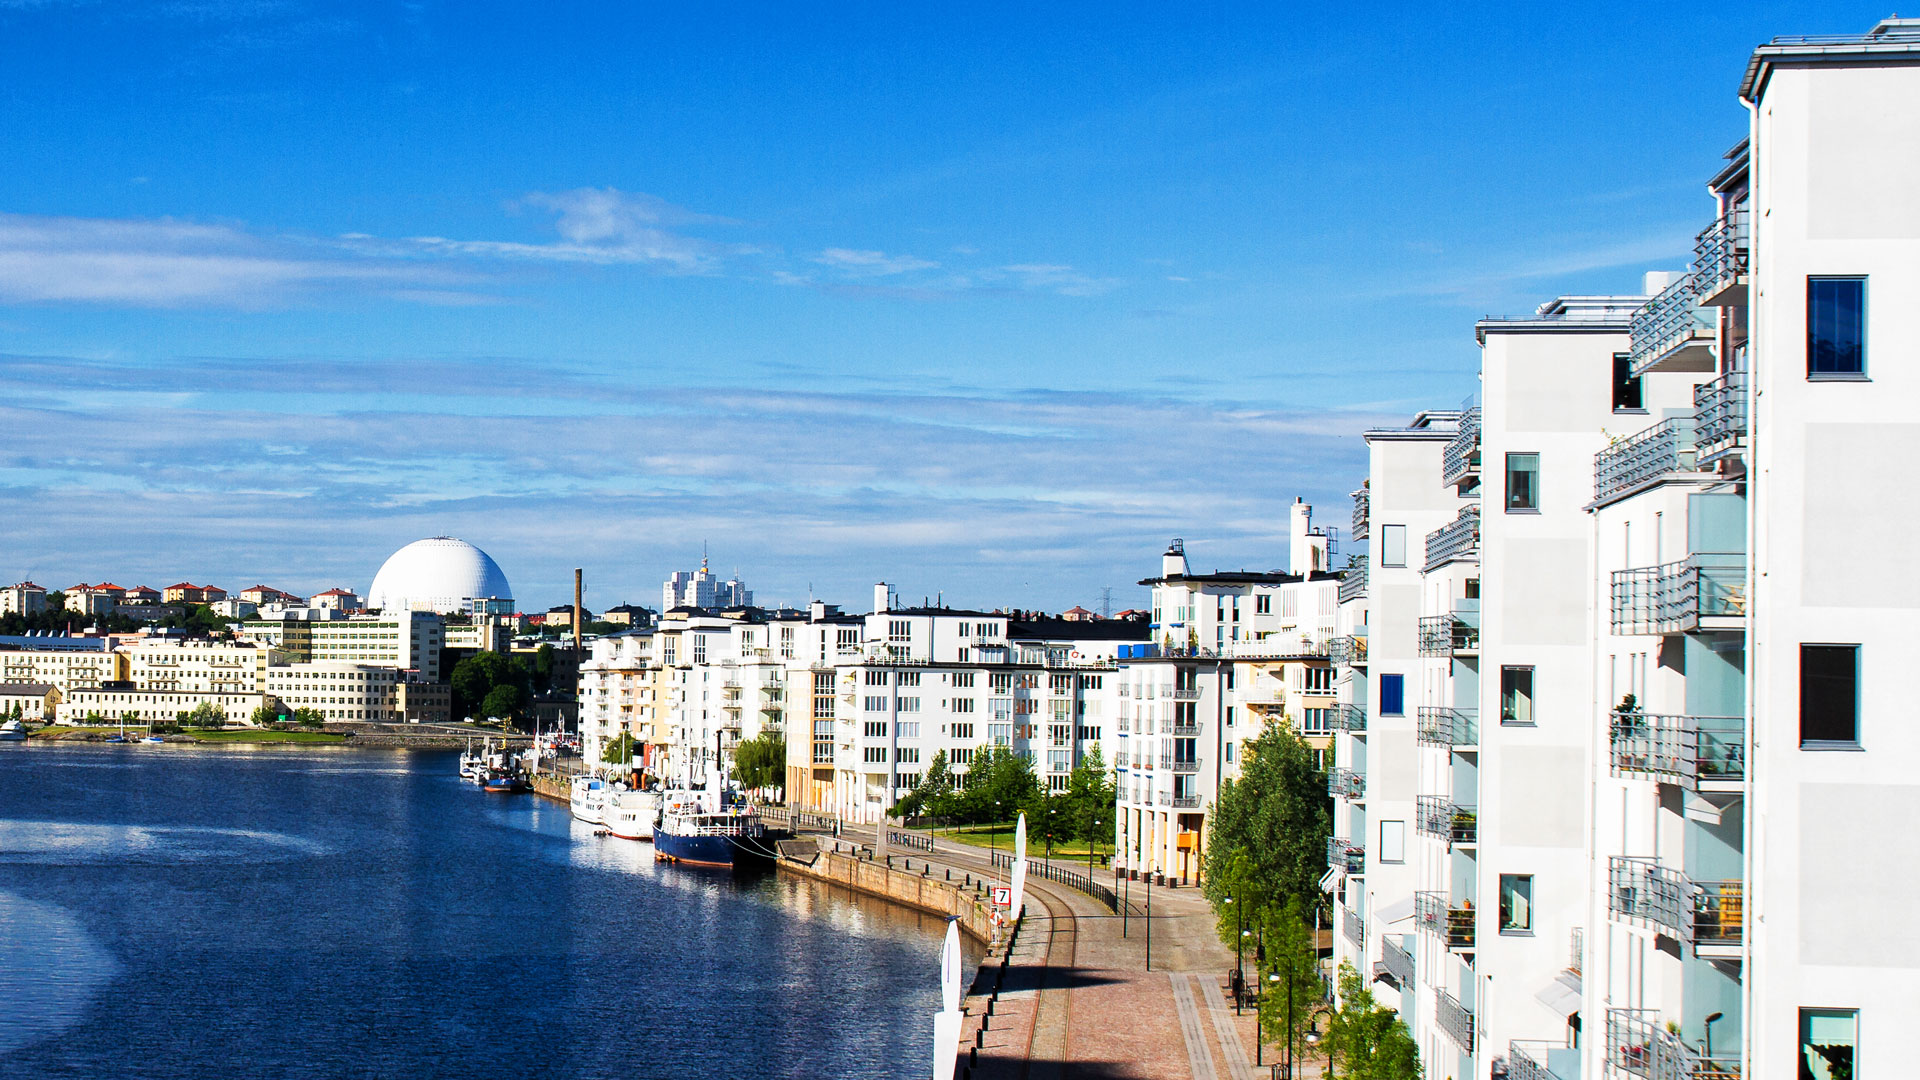 Modern apartment buildings by the water in Stockholm. Photo.